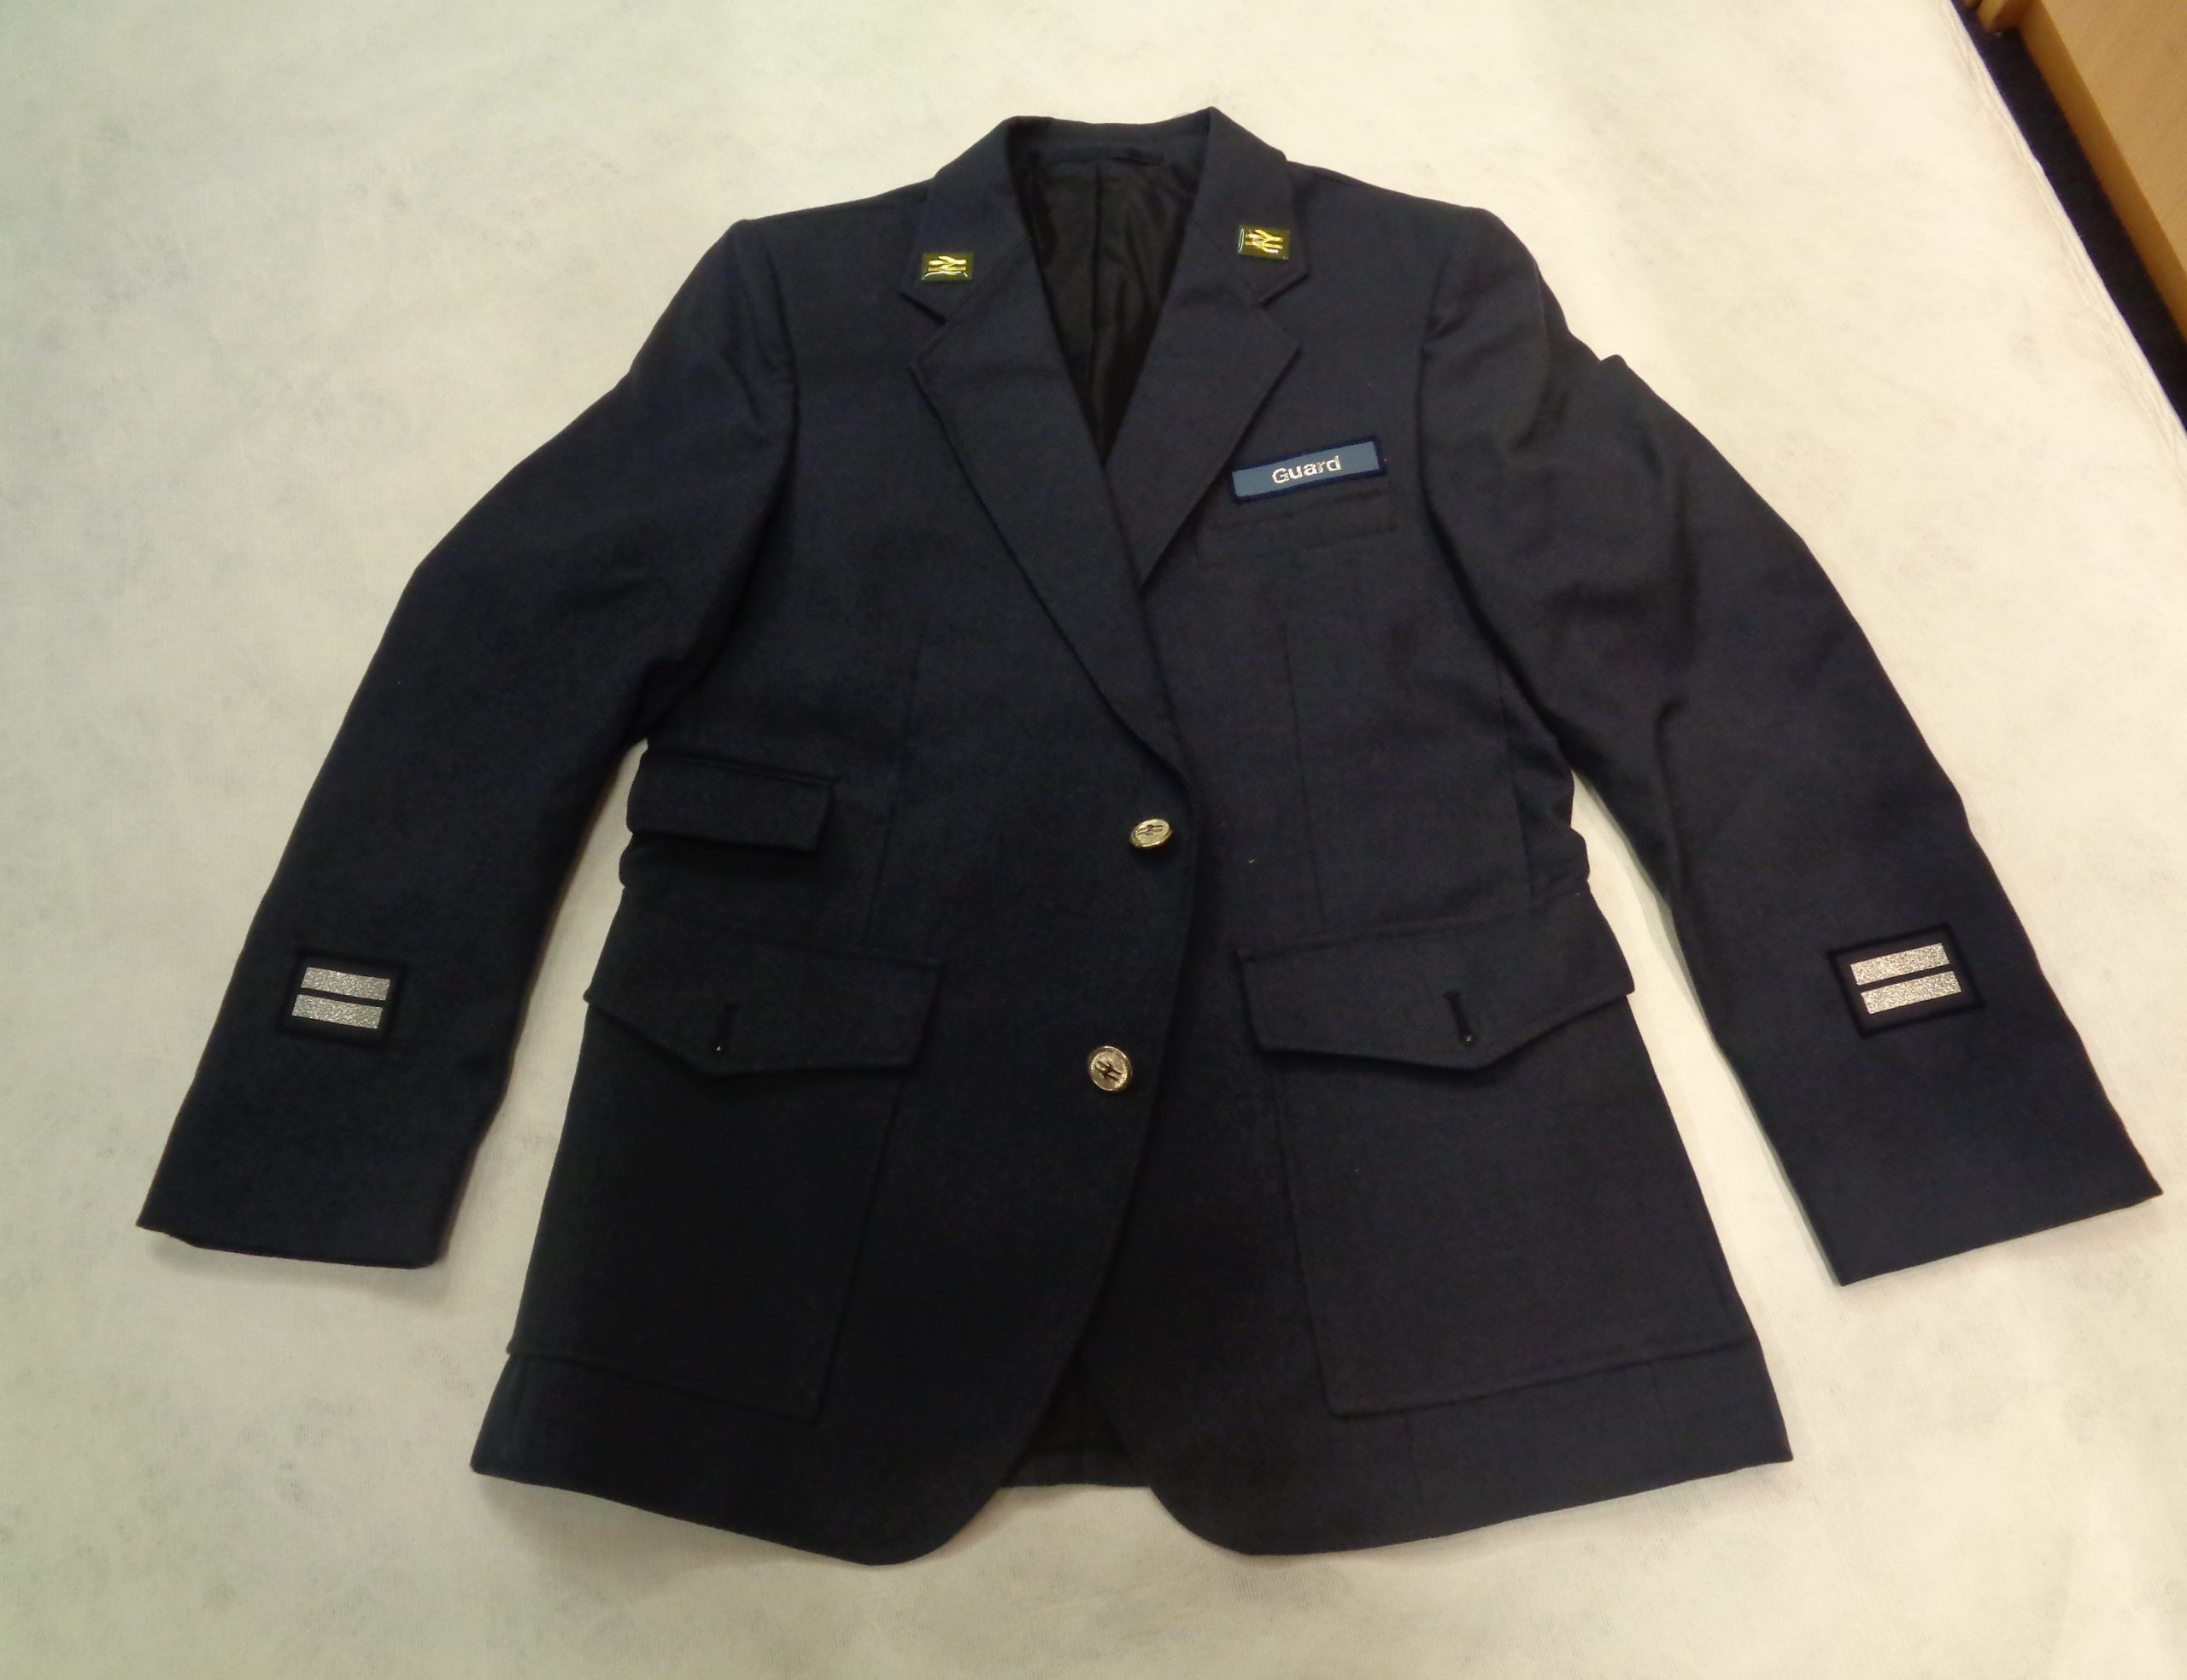 British Railway uniform jacket in deep navy with lapels laid out.